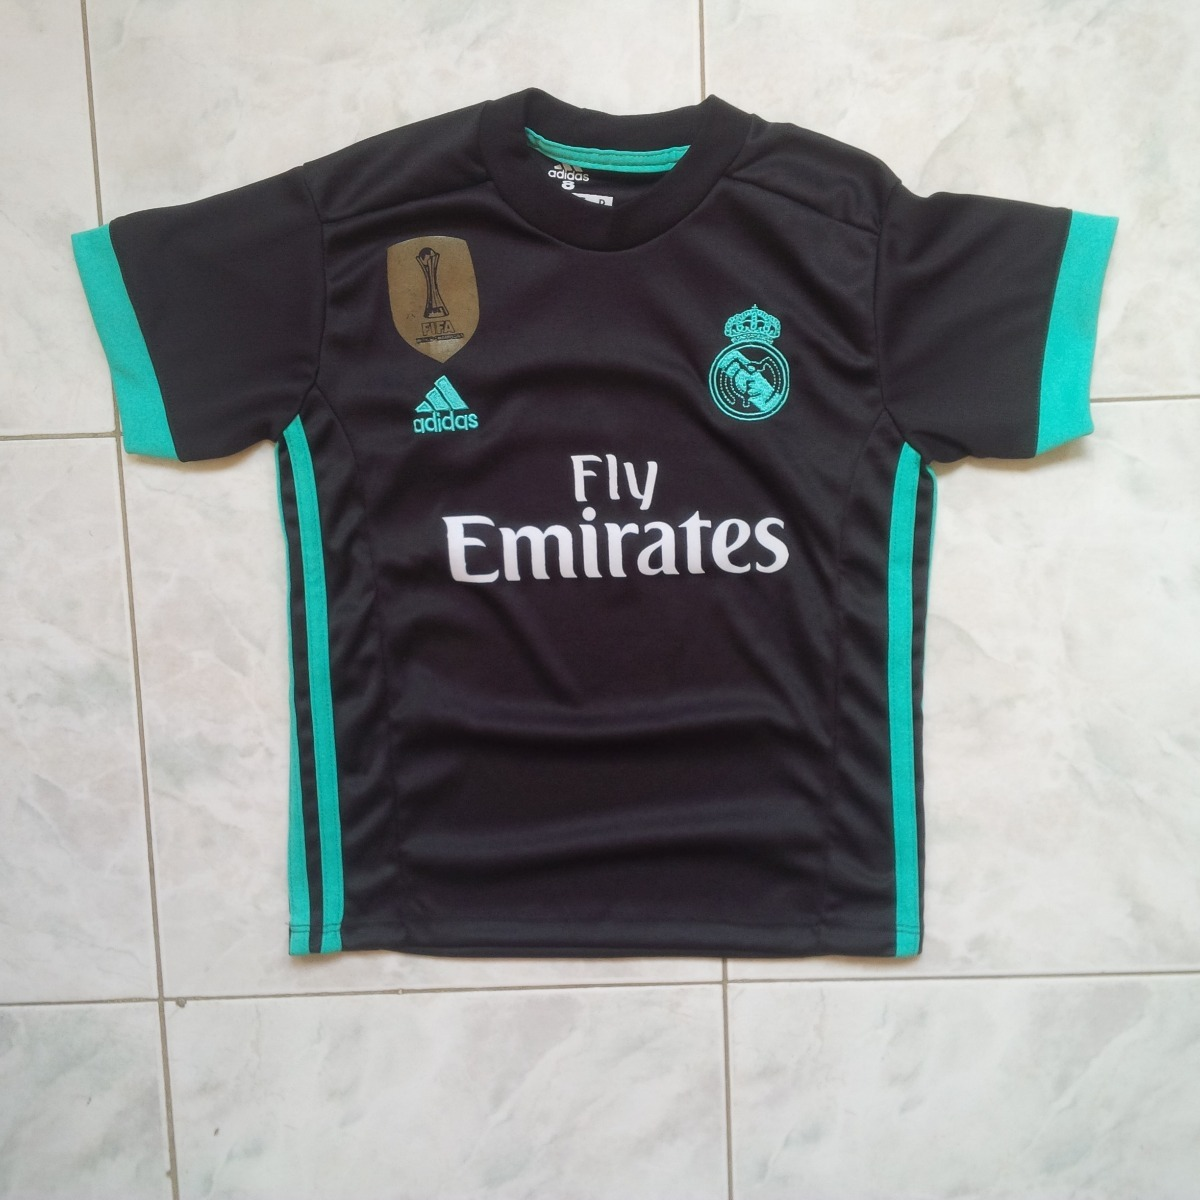 uniforme real madrid local - visitante 2017 2018 niños cr7. Cargando zoom. fa4f81b36035a